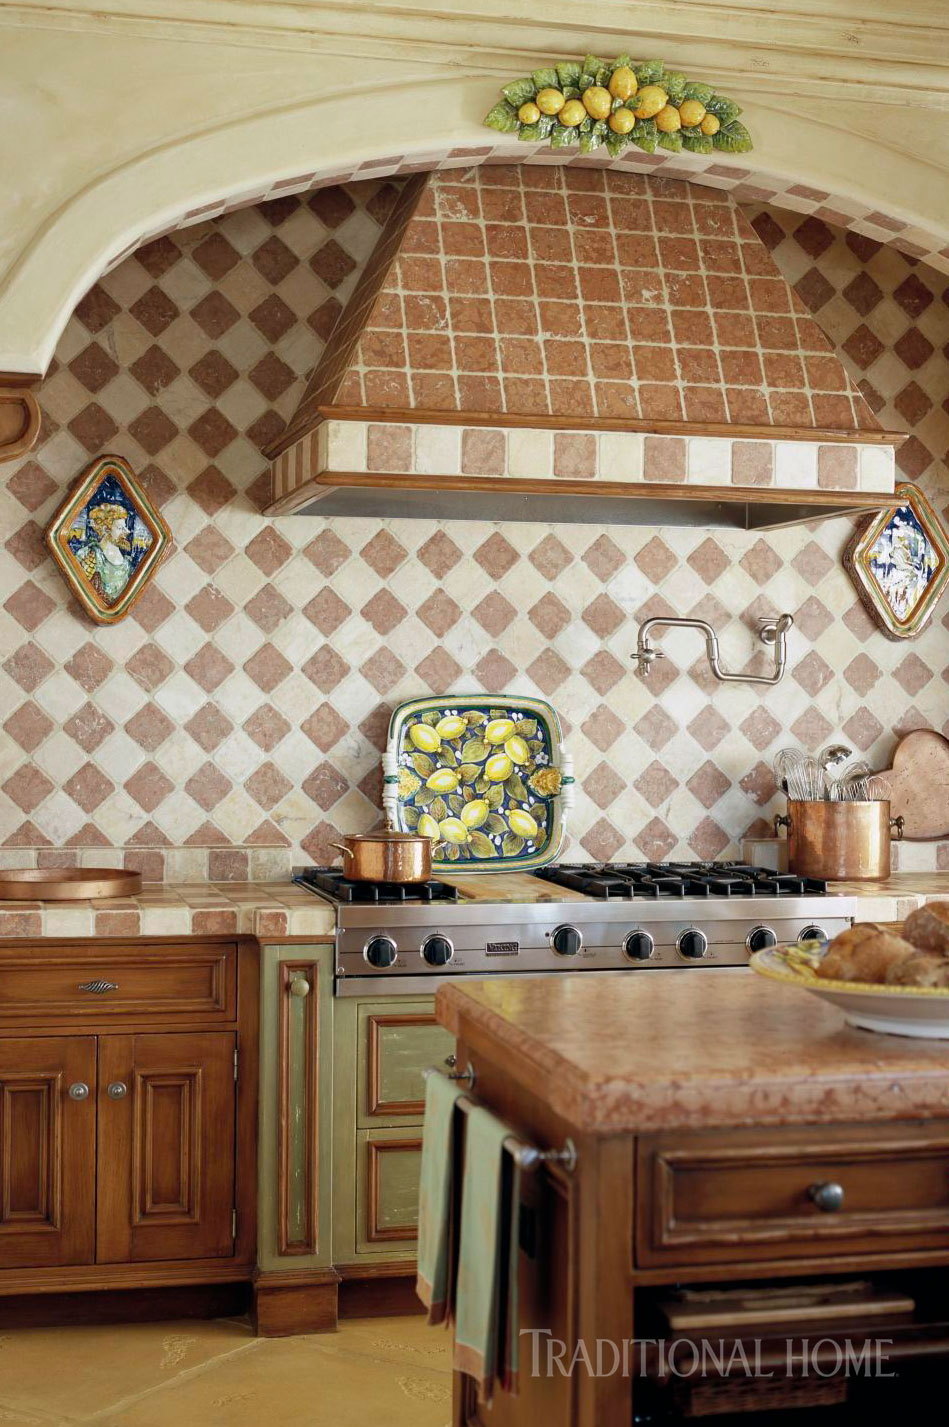 Napa Kitchen with Beauty and Brawn | Traditional Home